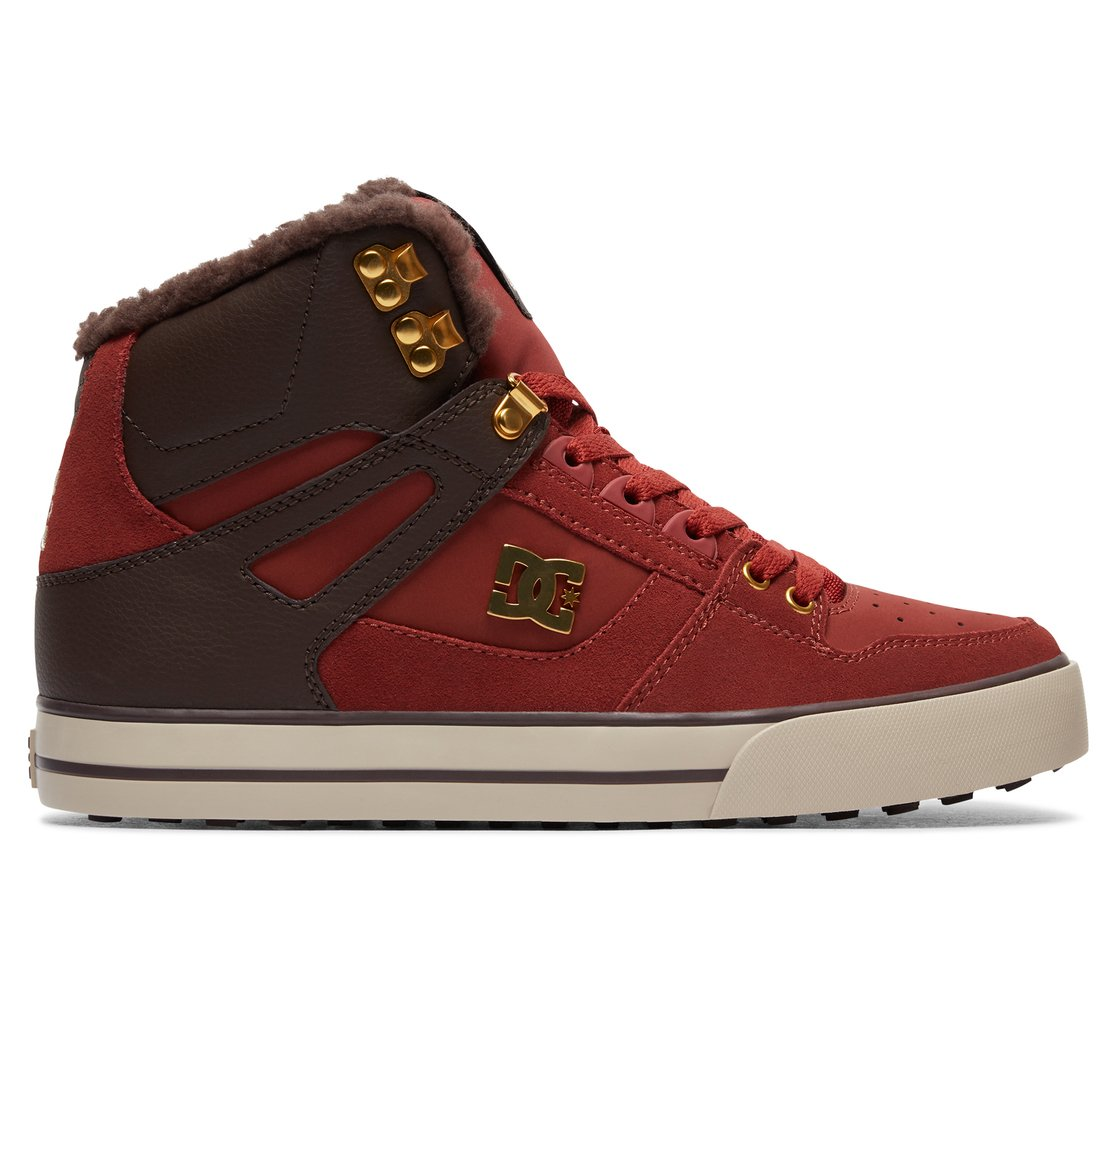 Pure High WC WNT - Chaussures montantes - Marron - DC Shoes